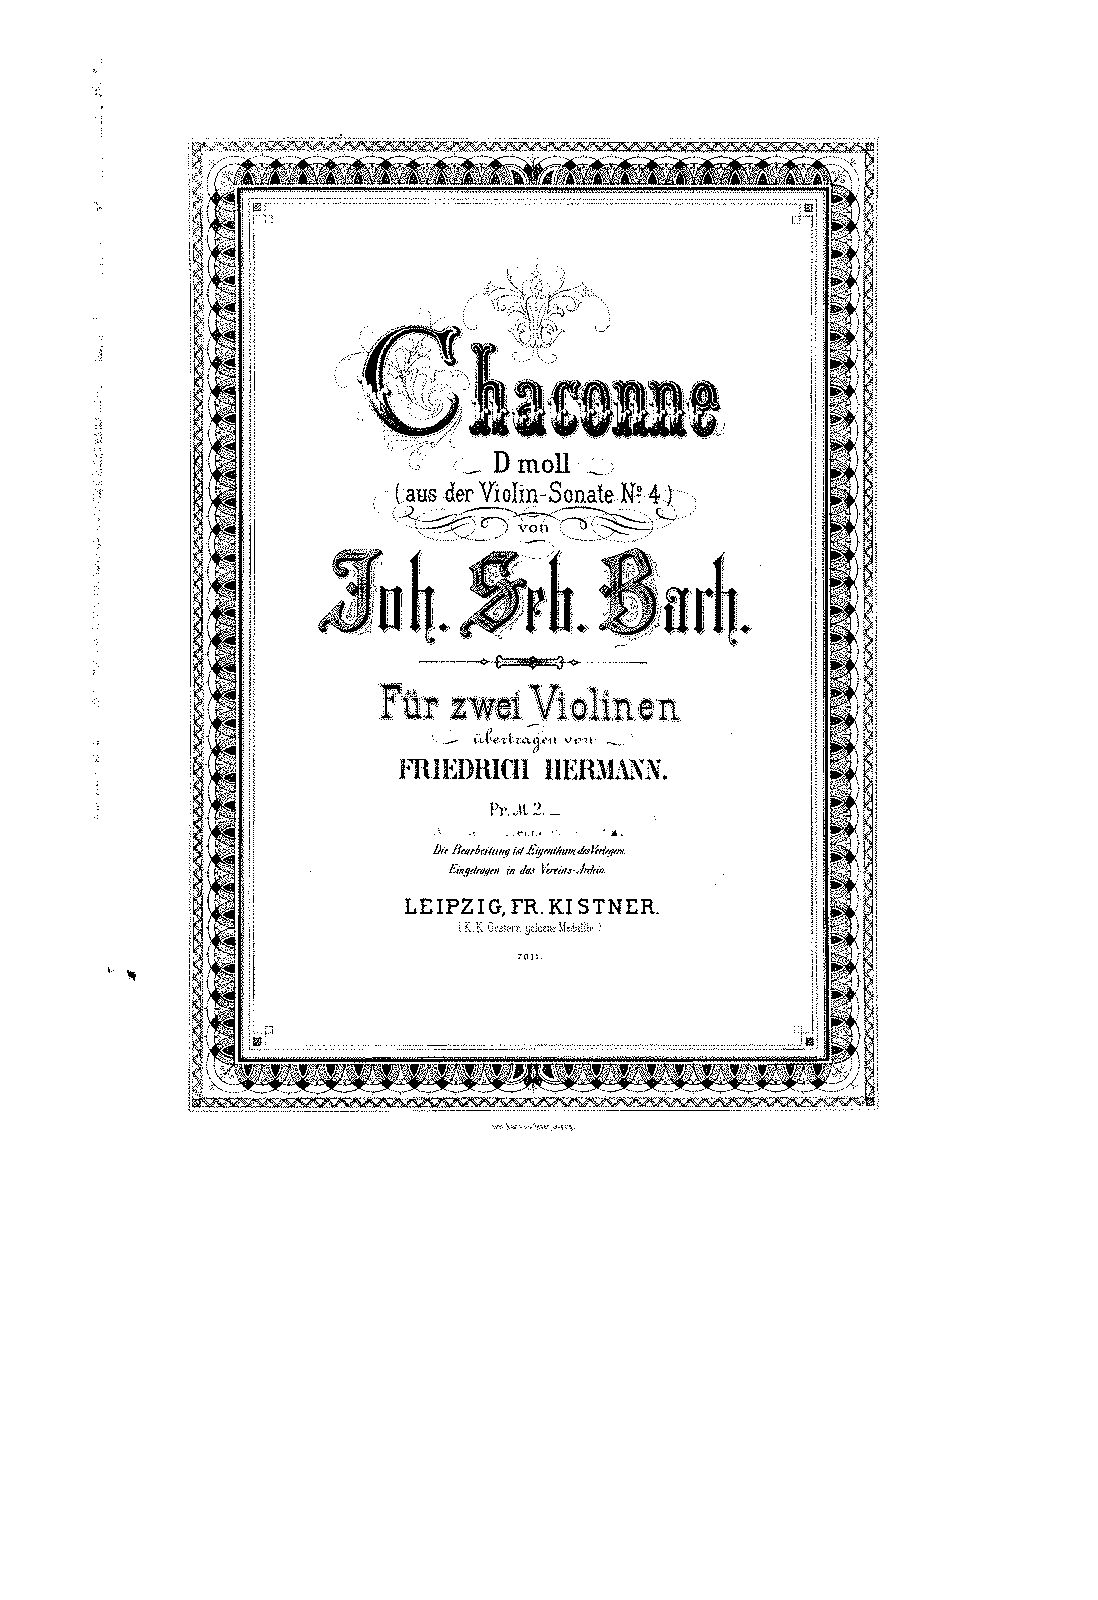 PMLP04292-Bach - Chaconne from the Violin Sonate No4 in D minor for 2 Violins (Hermann) violin 1.pdf